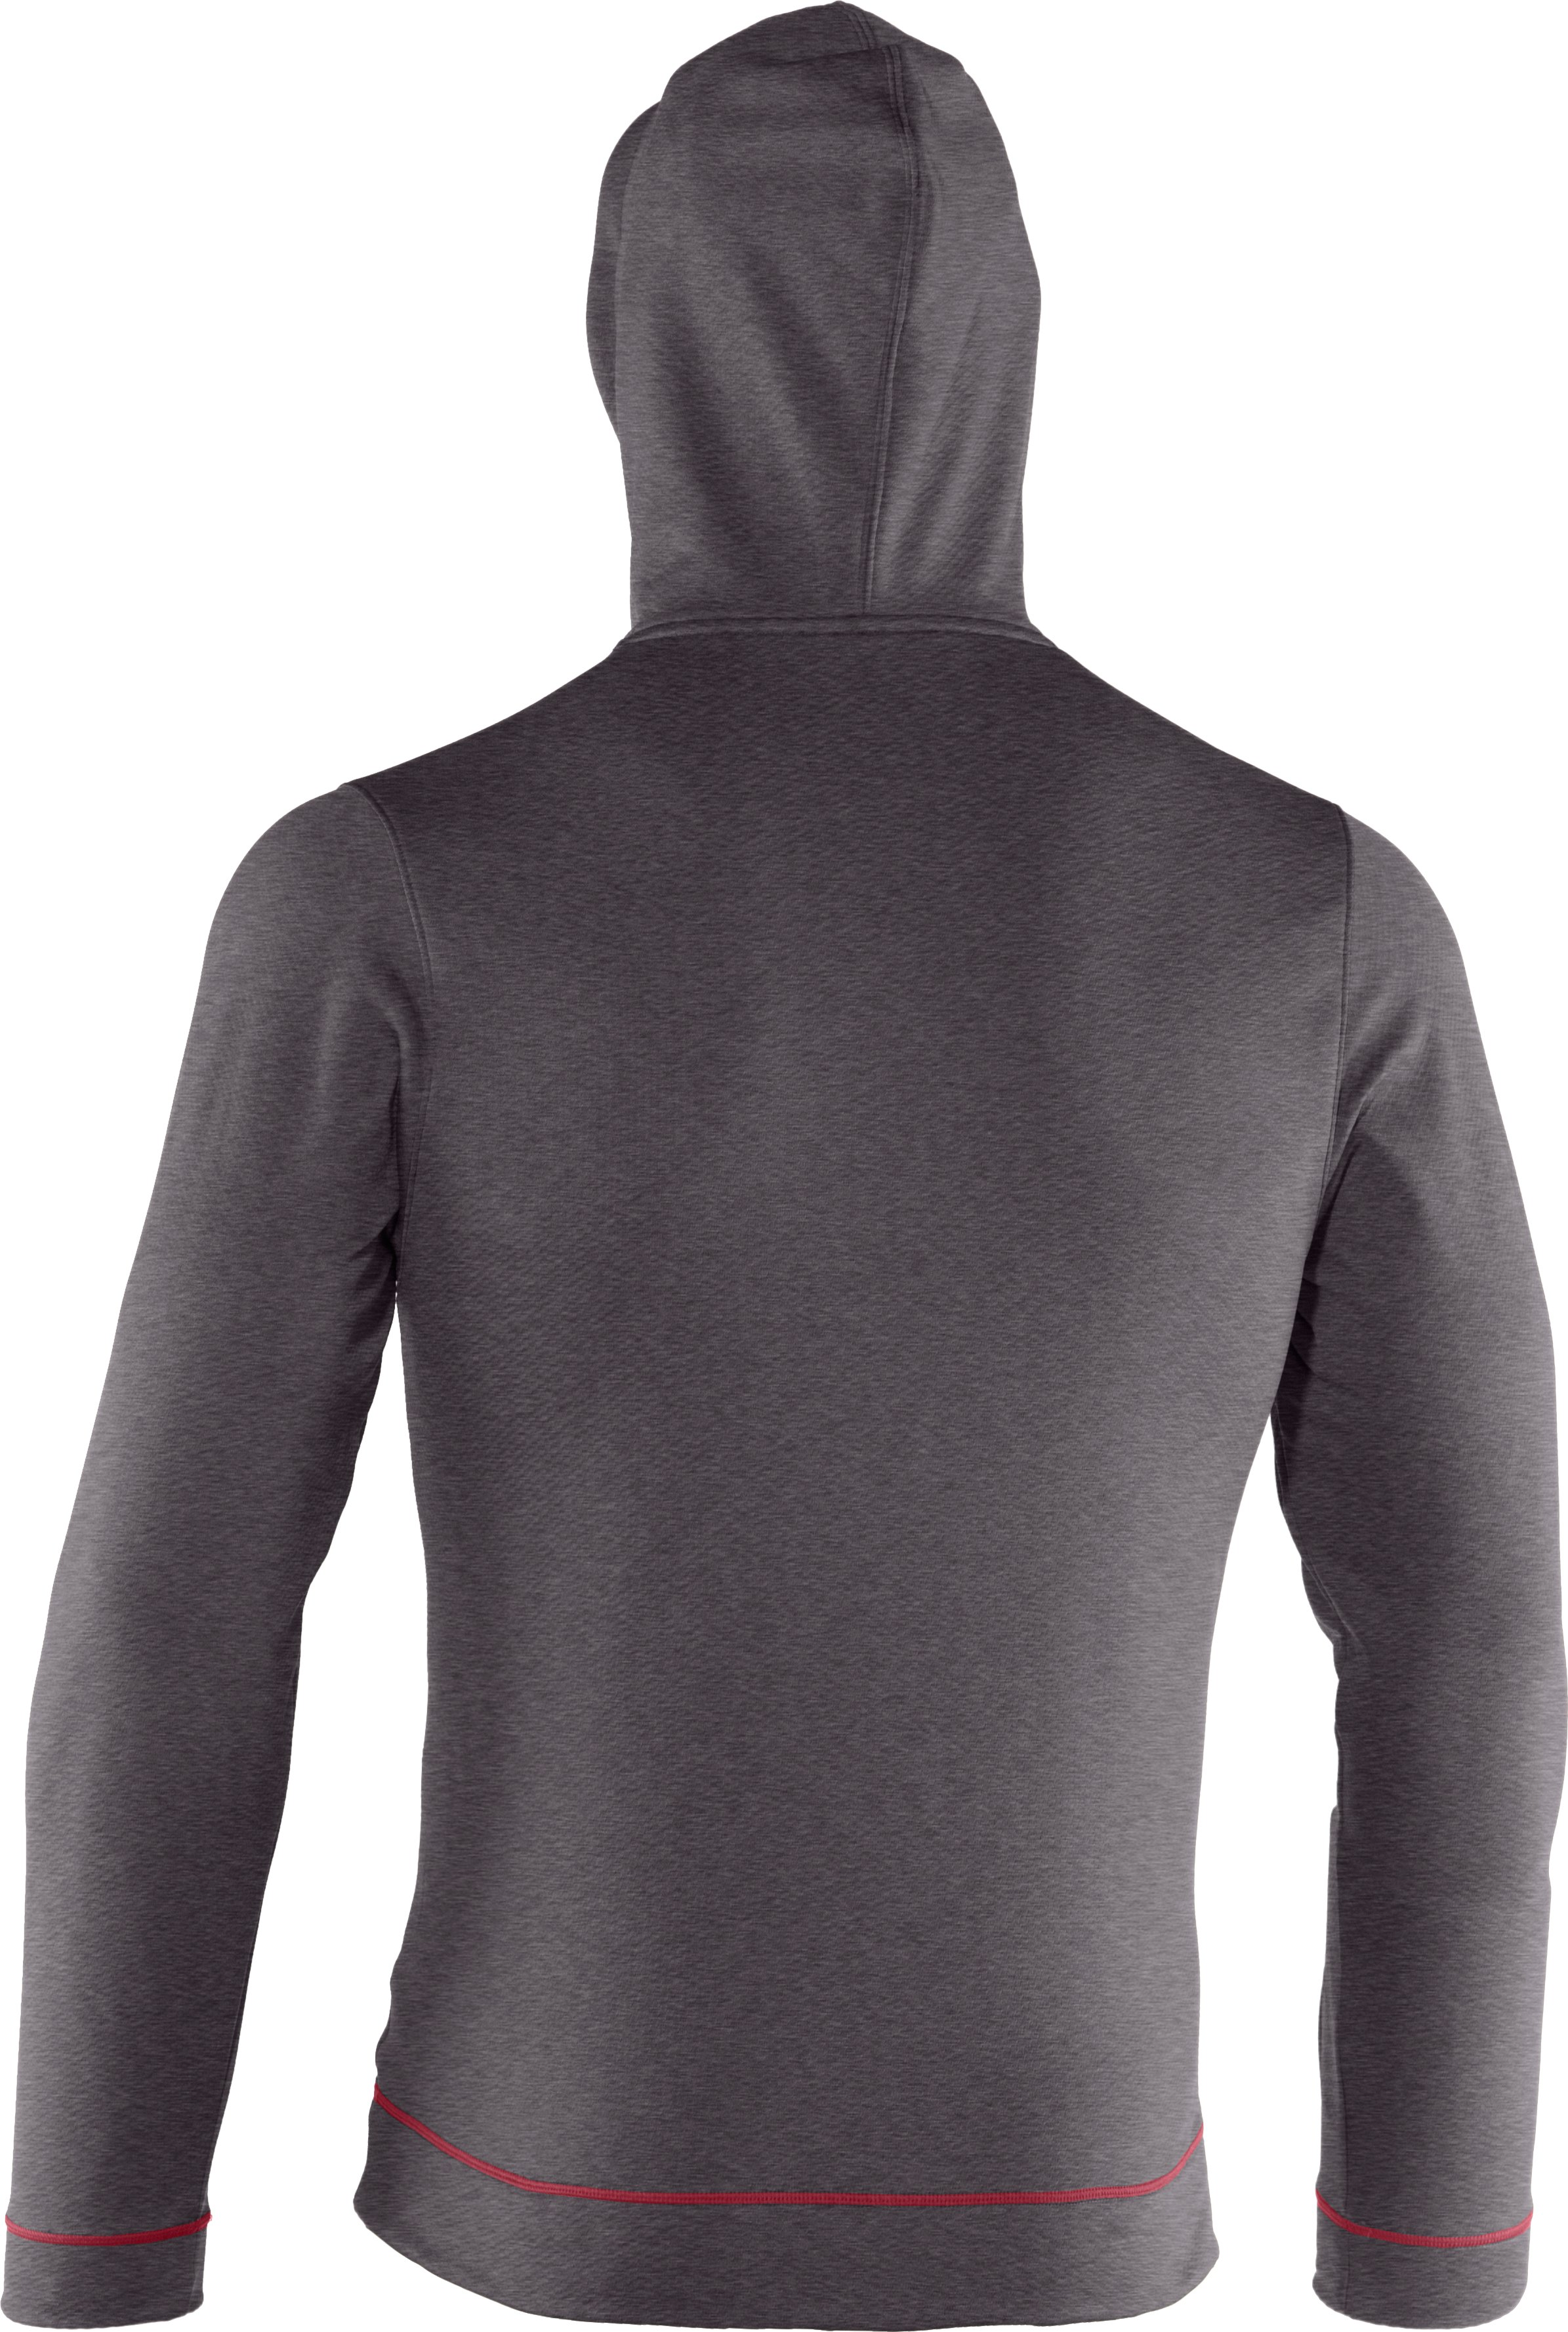 Men's UA Tech™ Fleece Pullover Hoodie, Carbon Heather